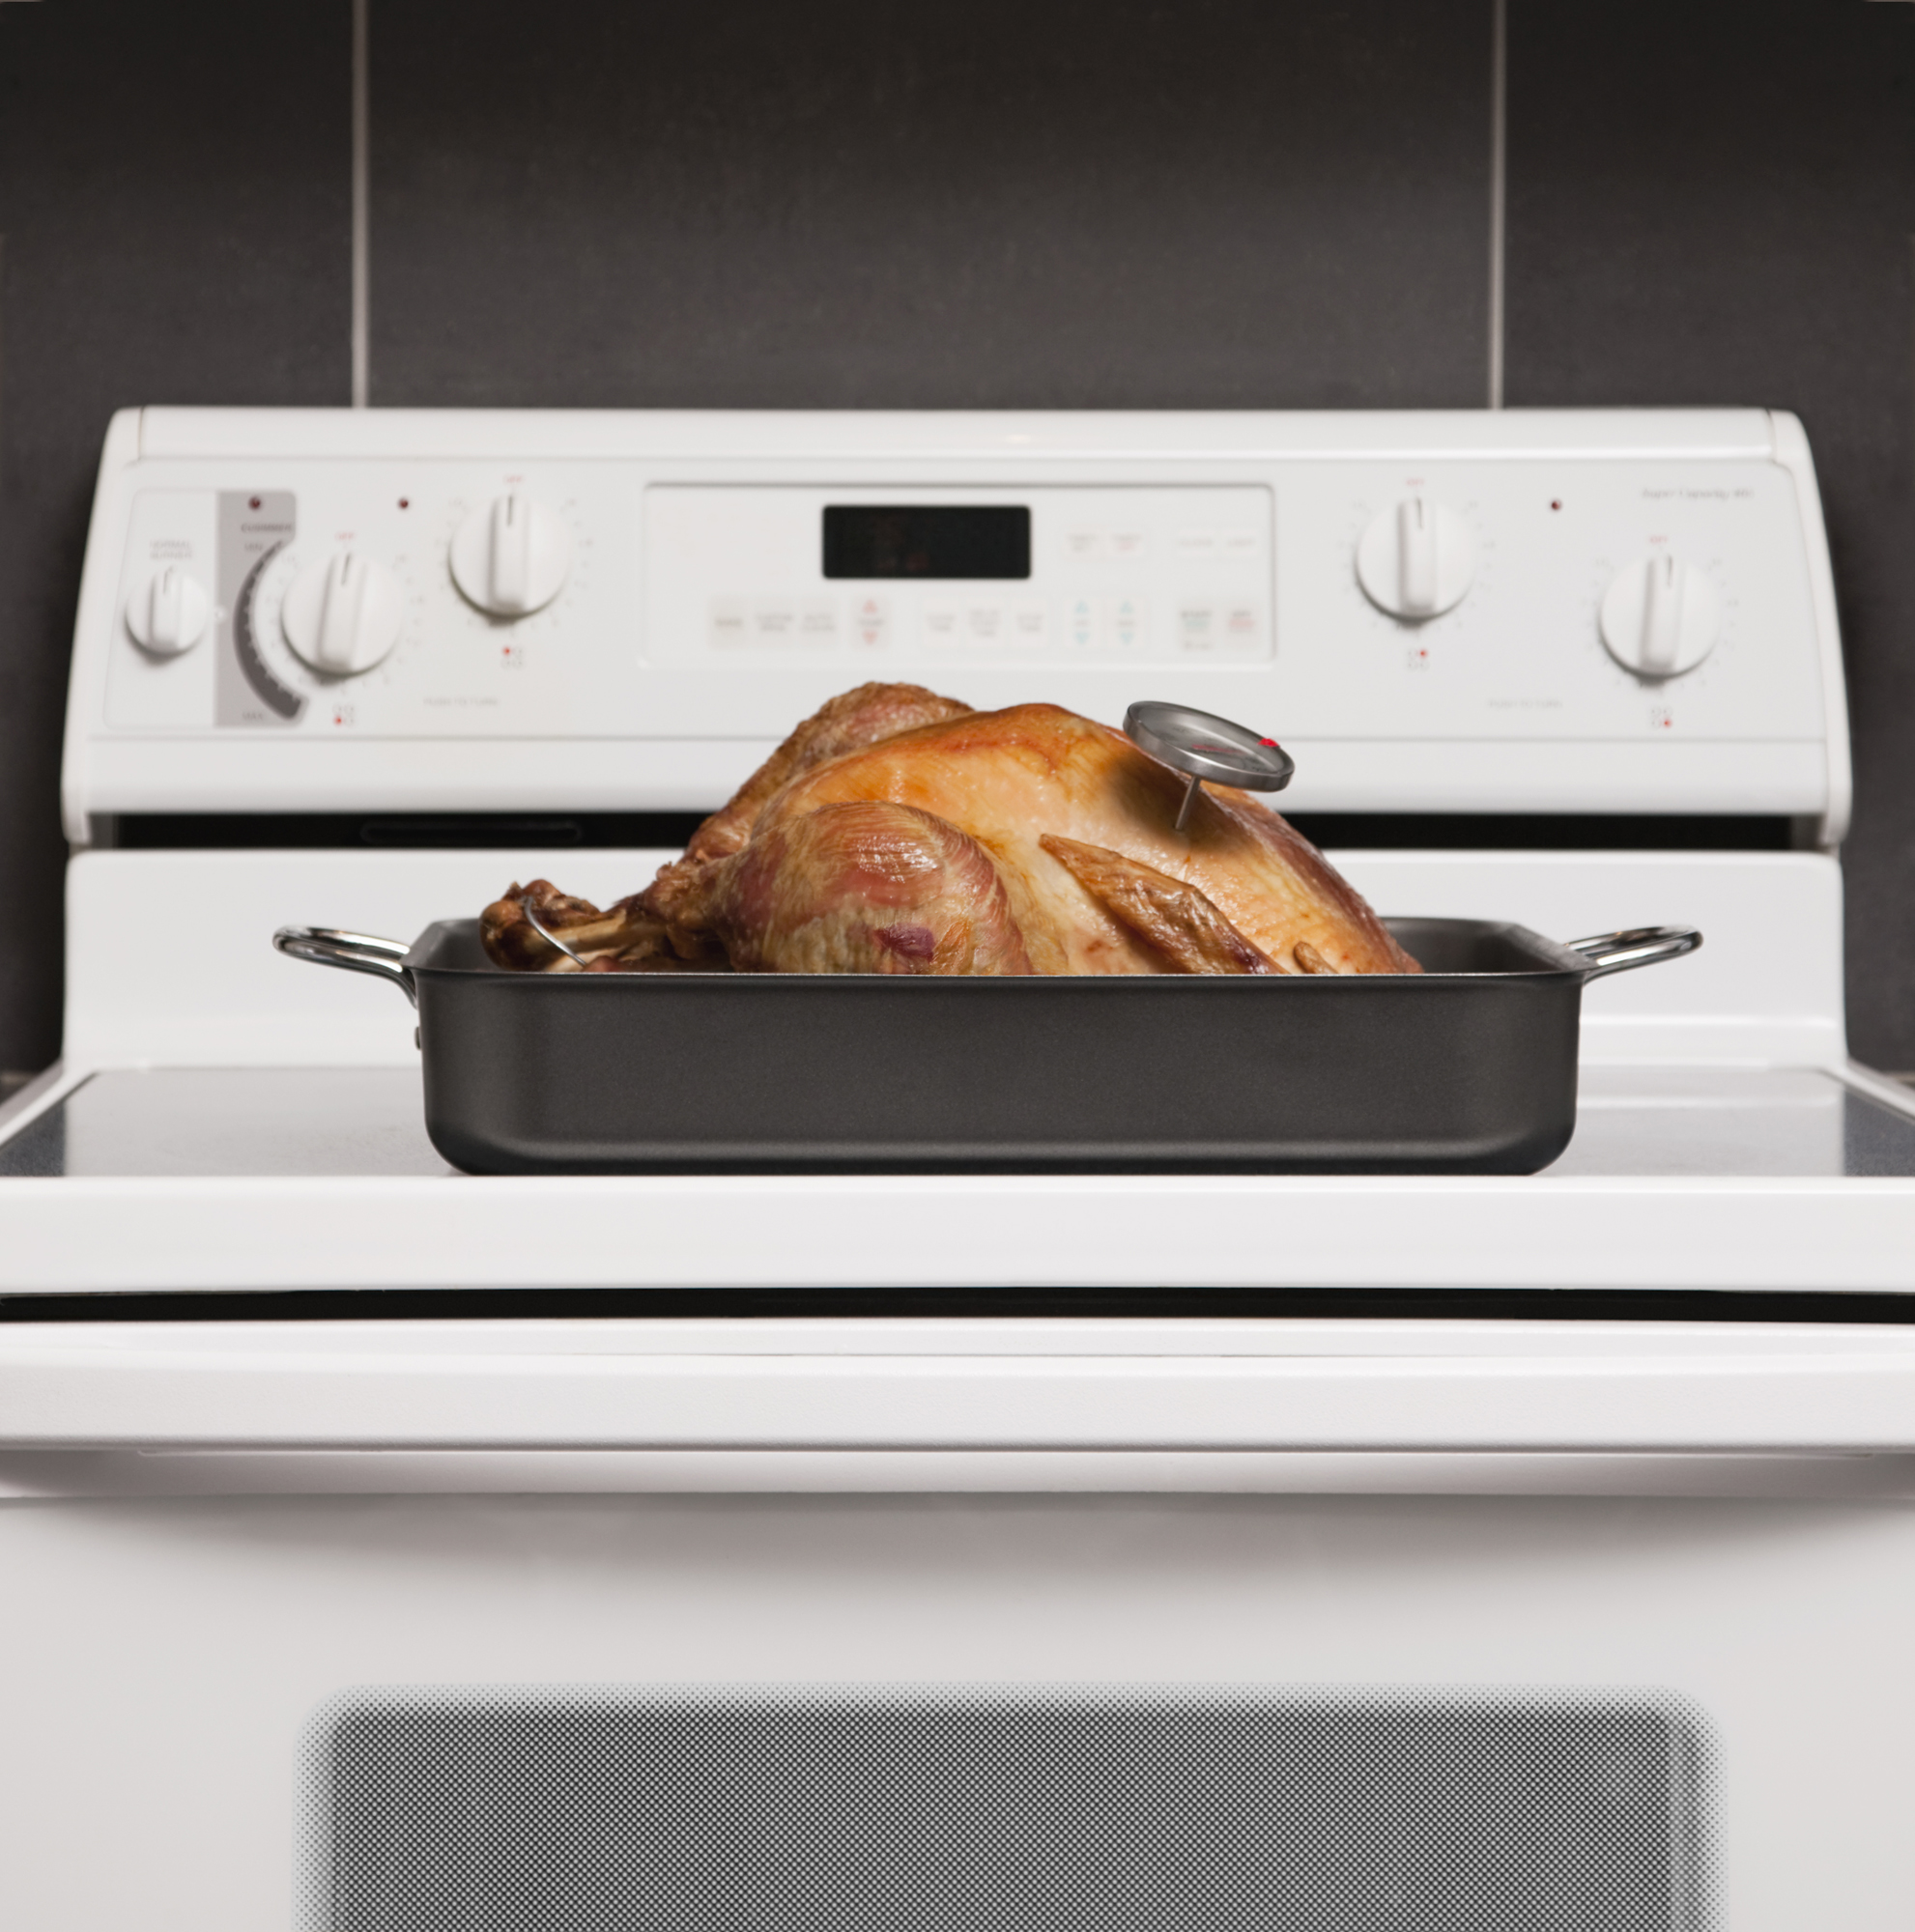 Roasted turkey with thermometer